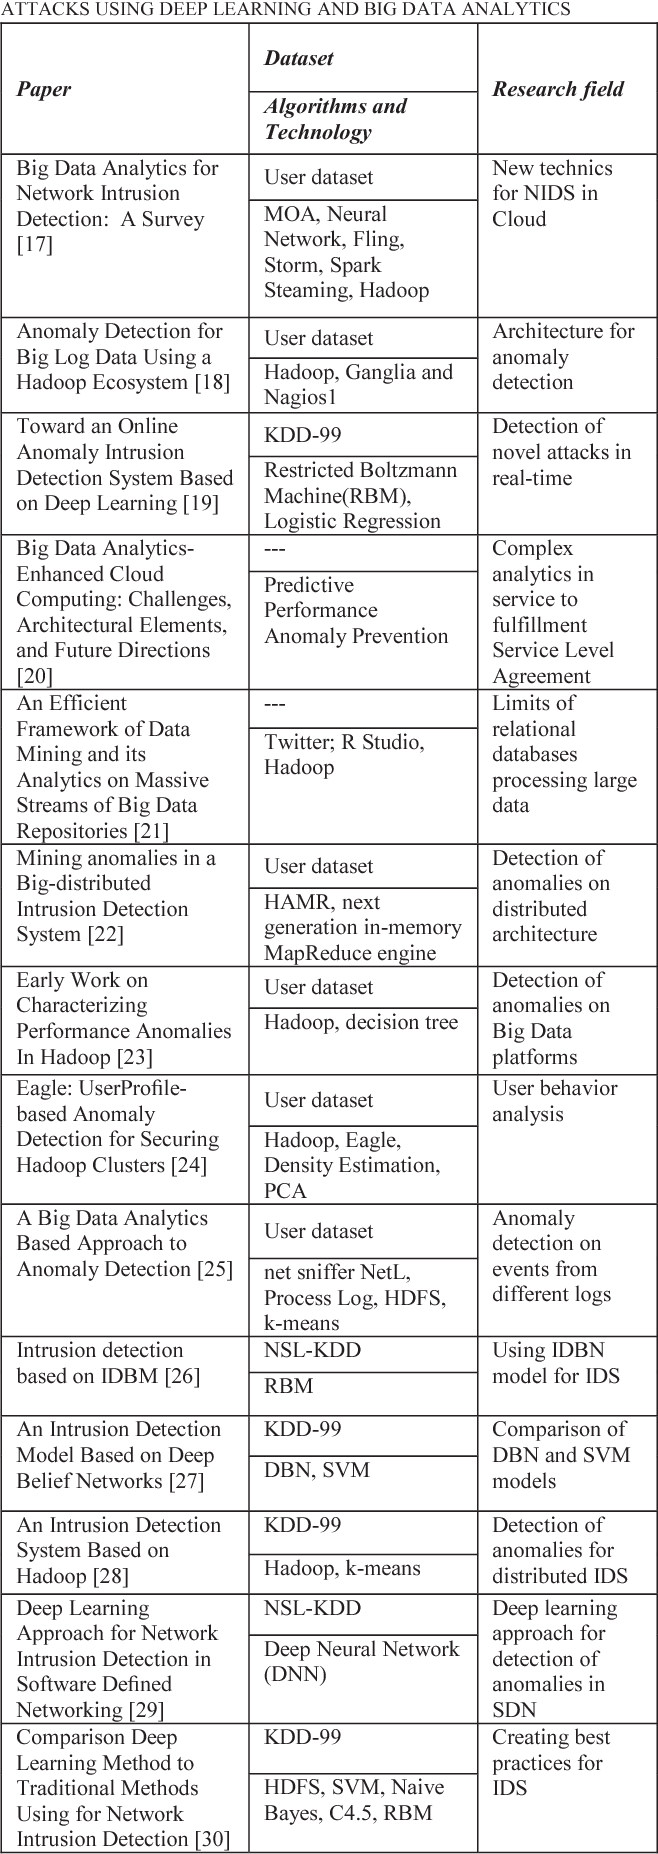 TABLE 2: REVIEW OF PAPERS THAT FOCUSED ON ANALYZE OF NOVEL ATTACKS USING DEEP LEARNING AND BIG DATA ANALYTICS